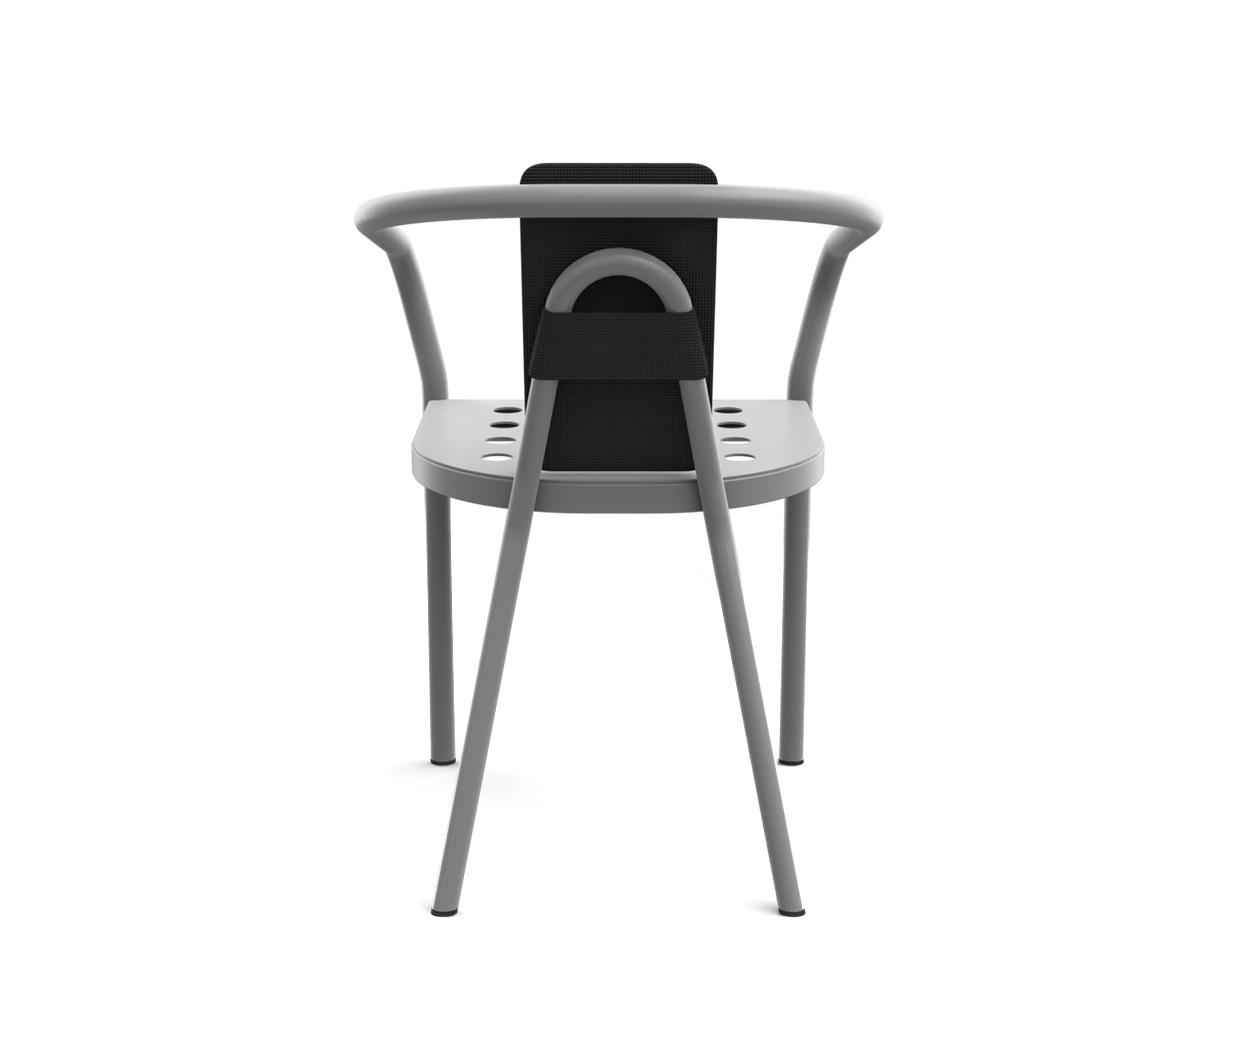 Helm Chairs Helm Chair Garden Chairs From Matière Grise Architonic